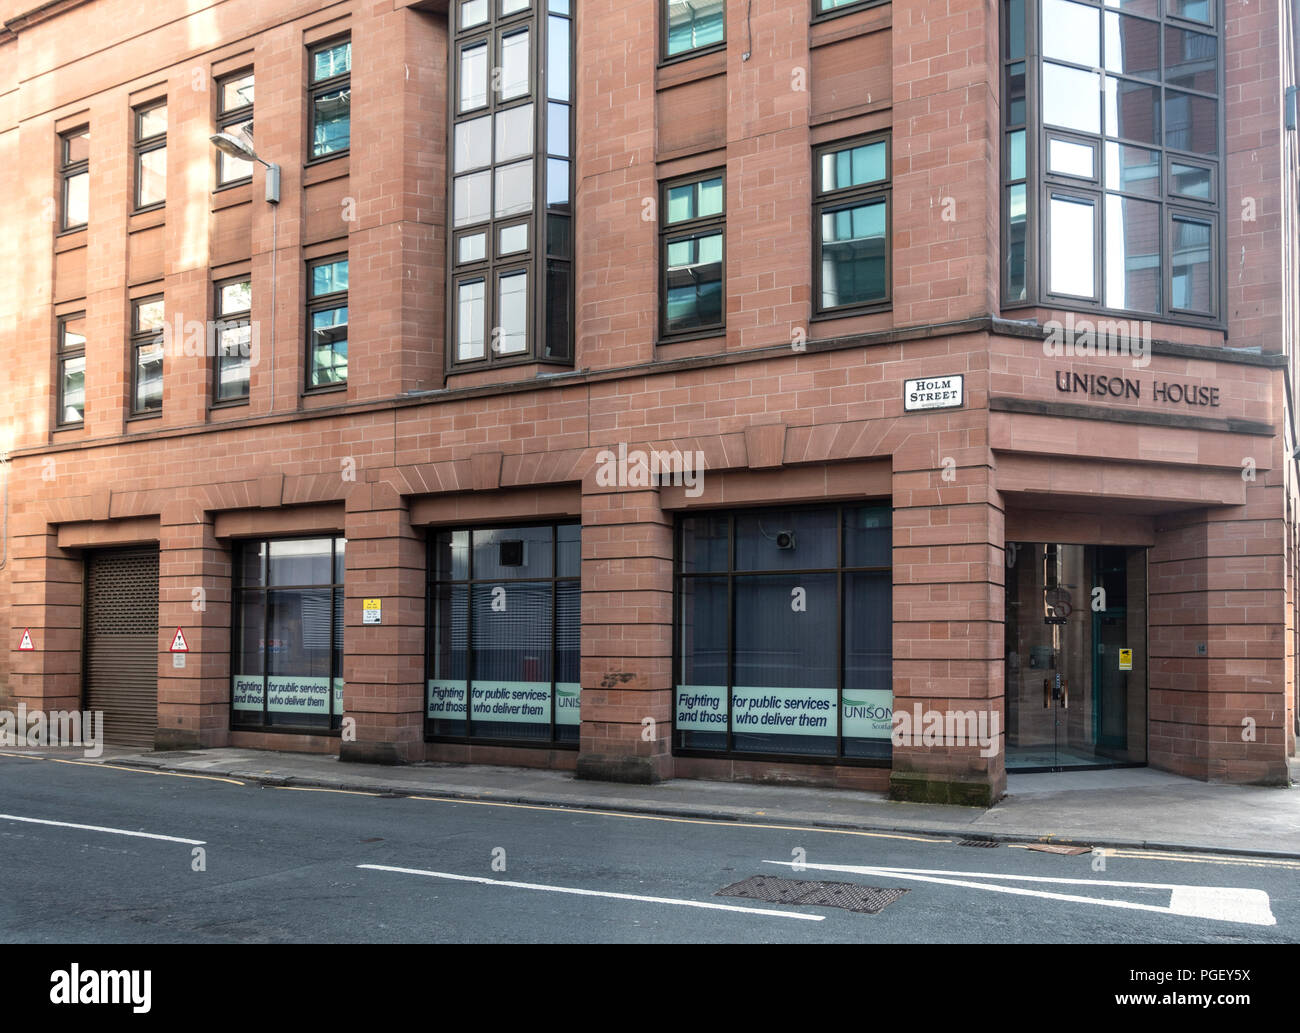 Trade union stock photos trade union stock images alamy for Unison house